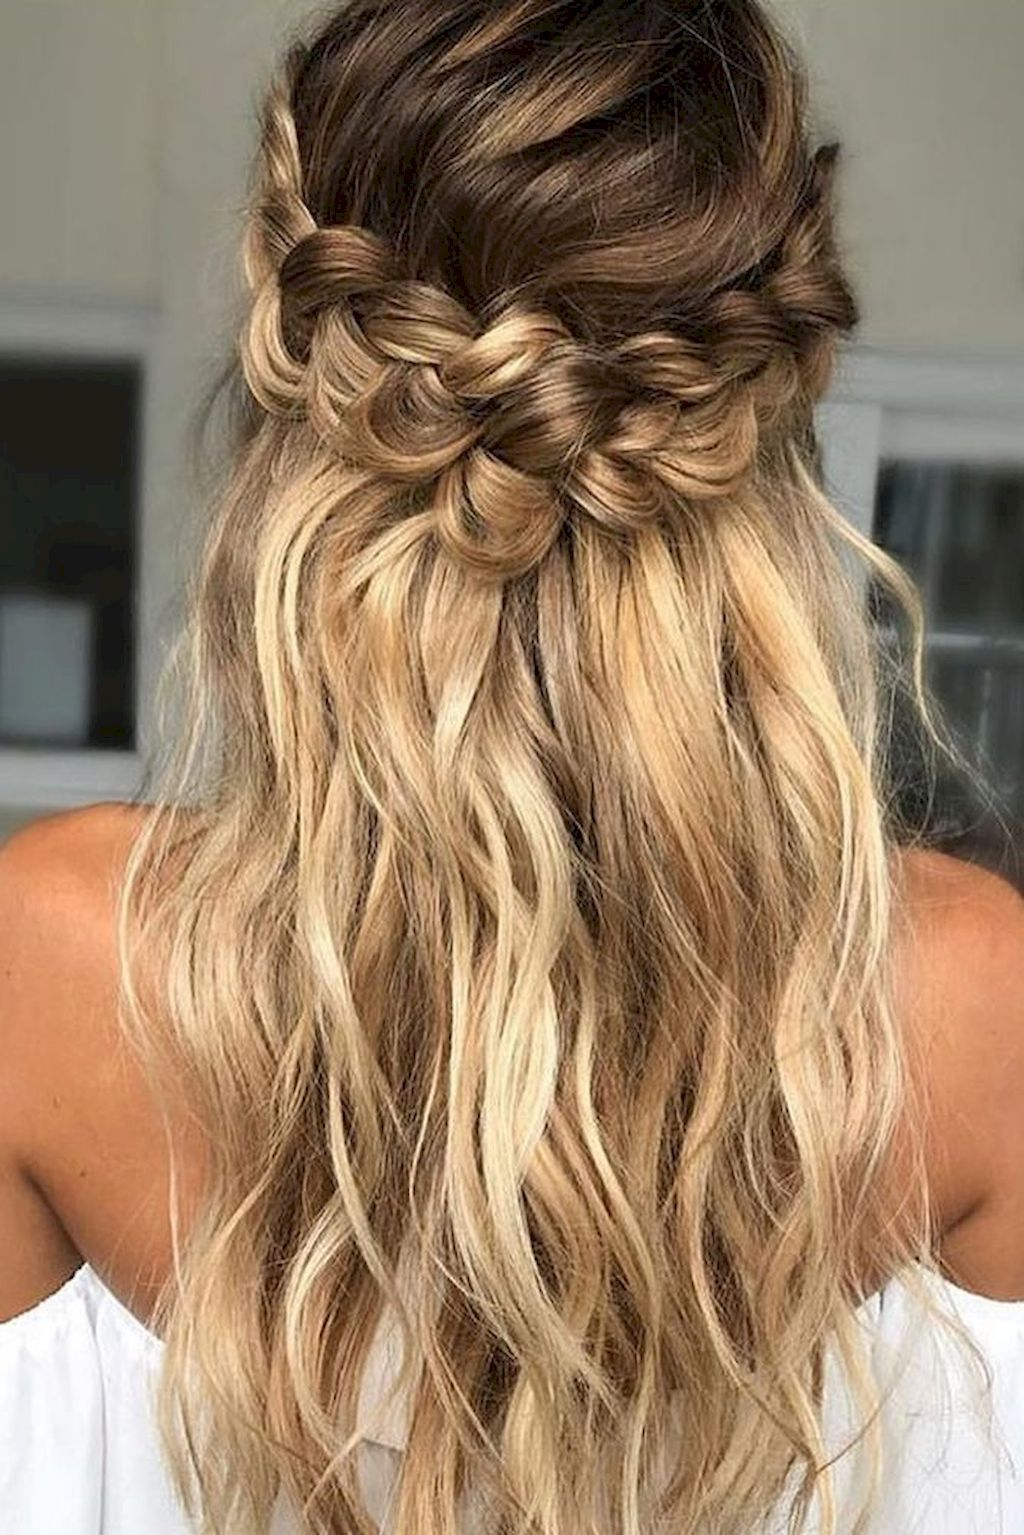 Hairstyles For Long Hair 2018 18